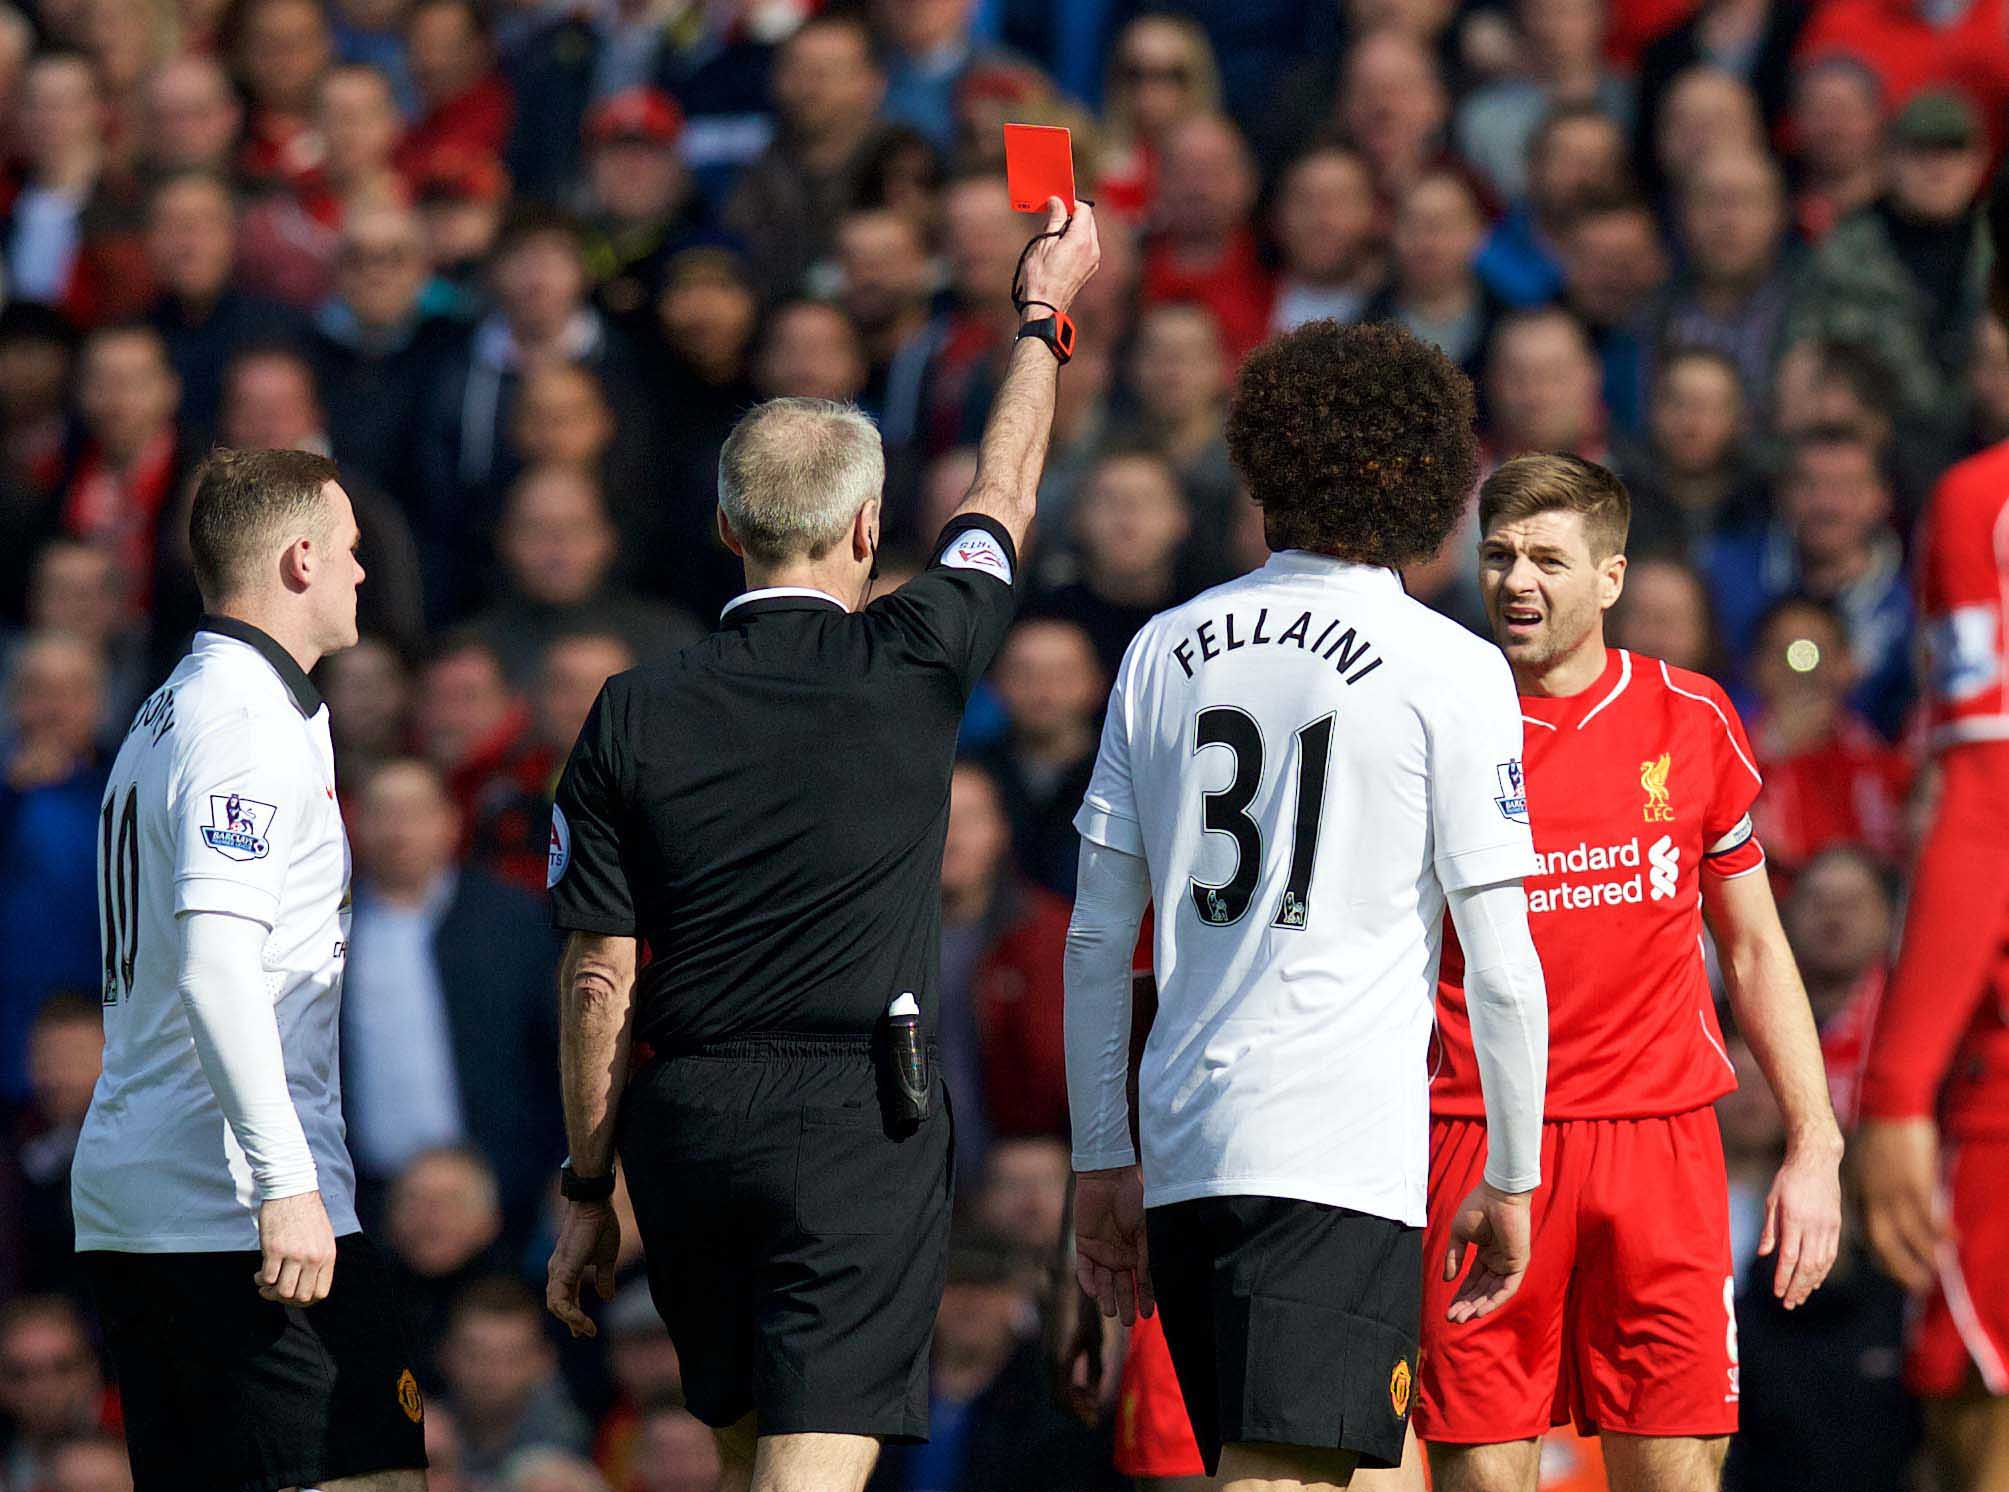 MATCH REVIEW: LIVERPOOL v MANCHESTER UNITED